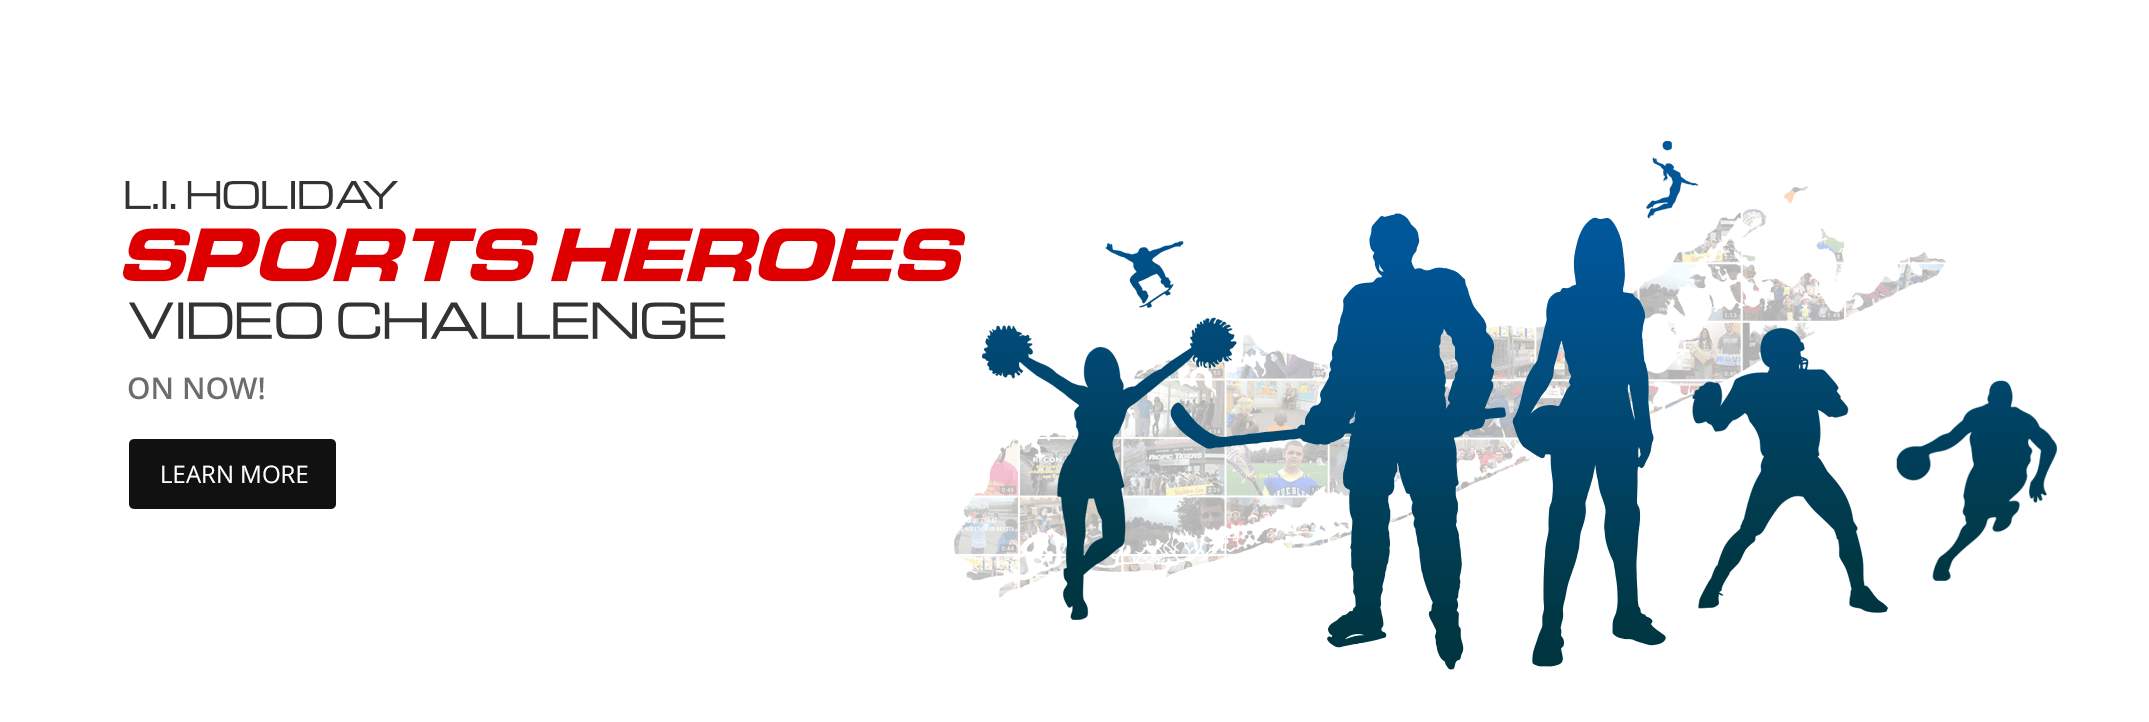 Holiday Sports Heroes Video Challenge 2018